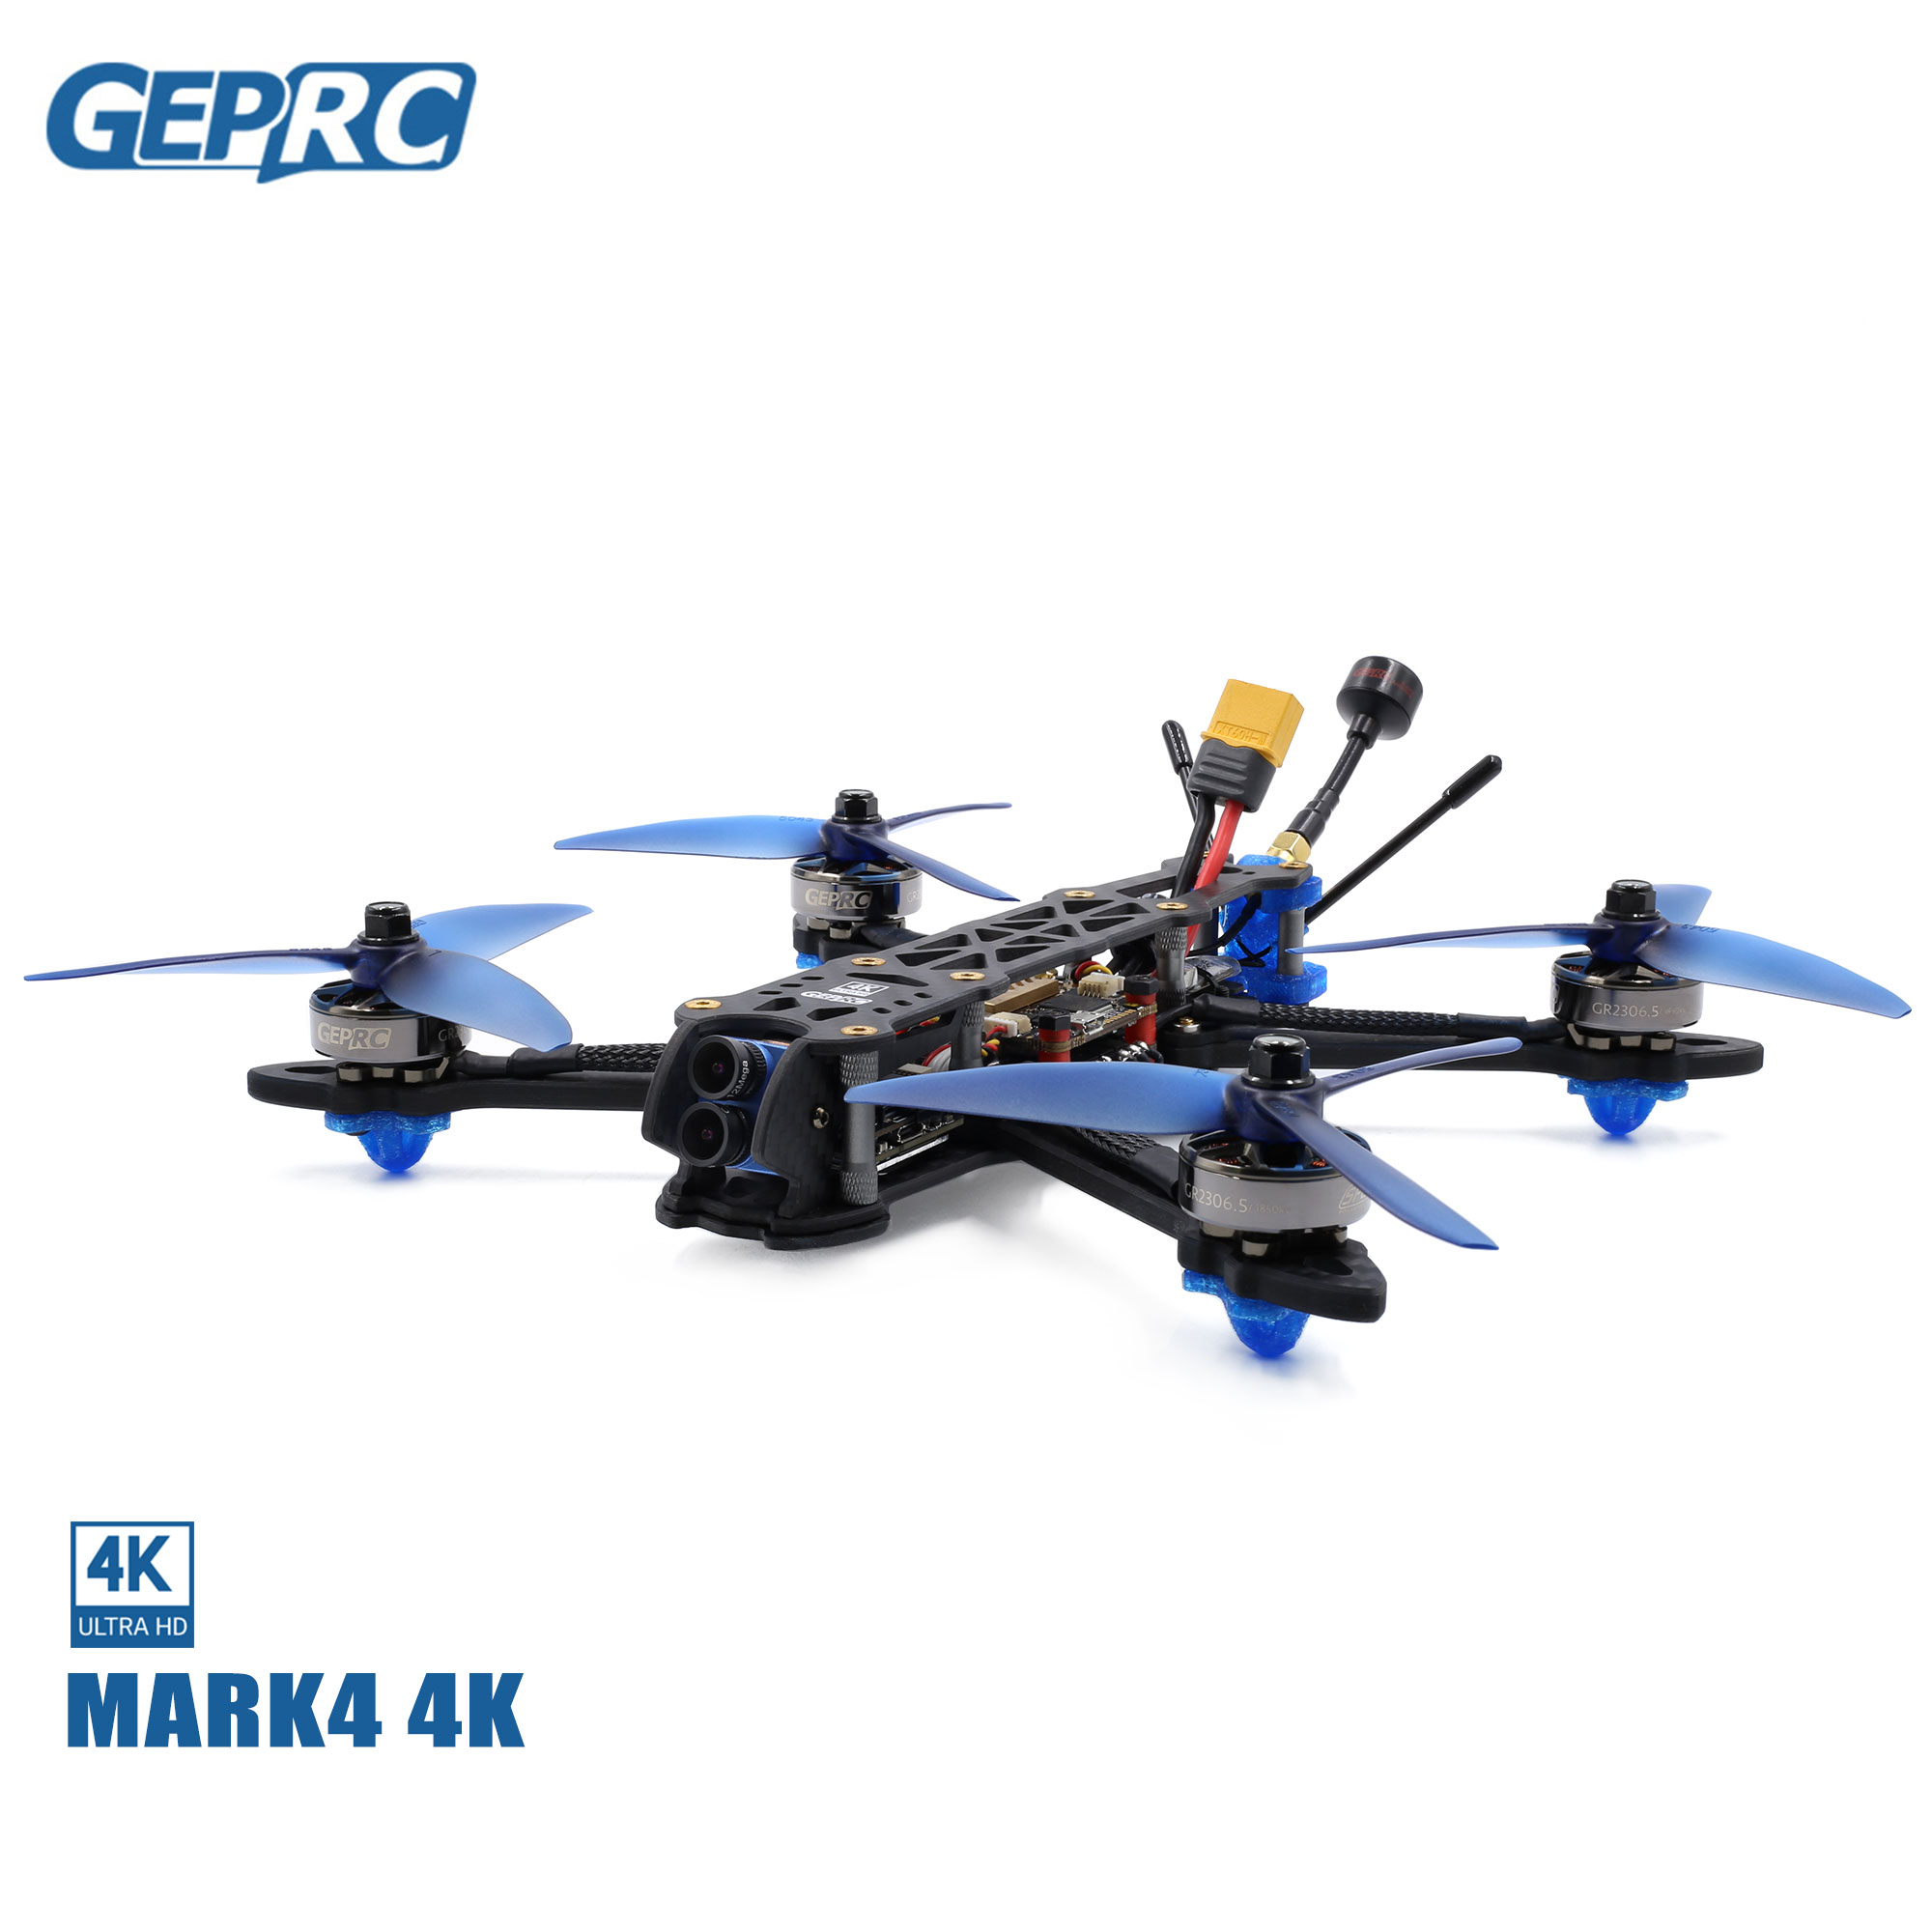 GEPRC MARK4 4K Tarsier V2 4-6S FPV Drone BNF GR2306.5 224mm FPV Freestyle Frame With SPAN-F722-VTX For FPV RC Drone